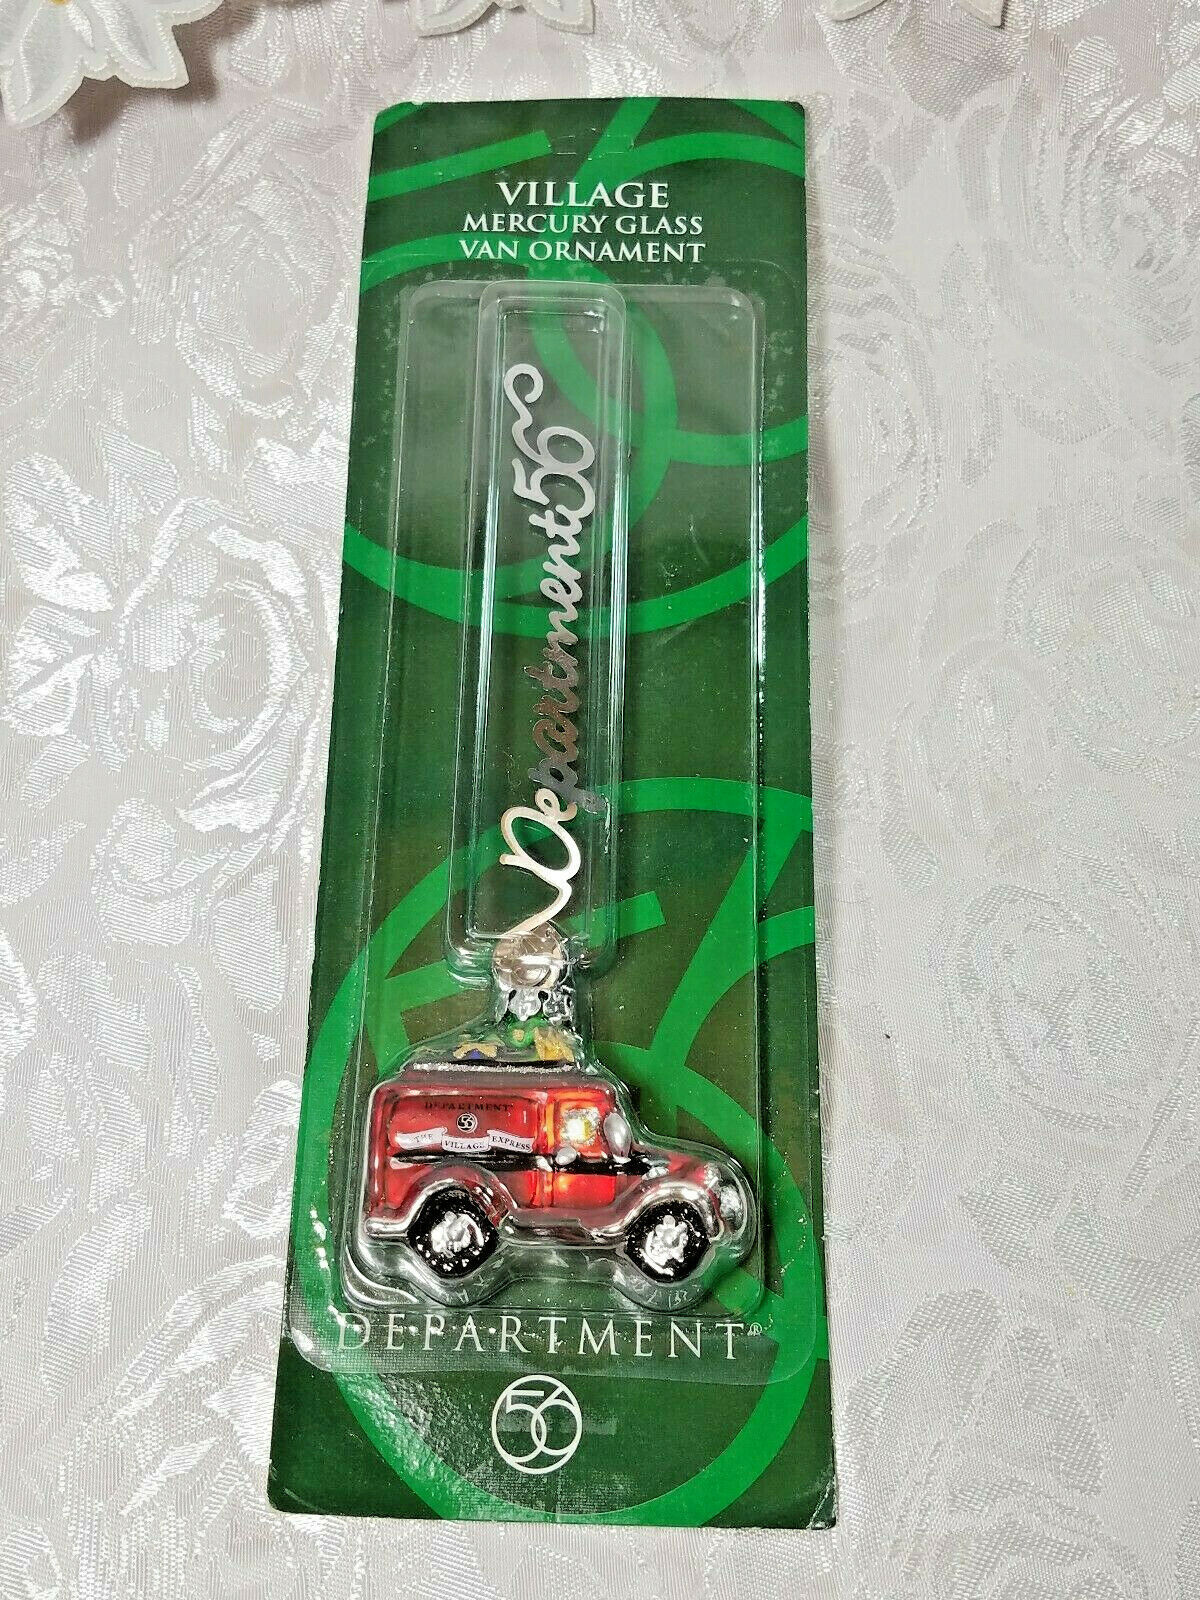 Dept 56 Village Mercury Glass Ornament Red Village Express Van NEW 2001